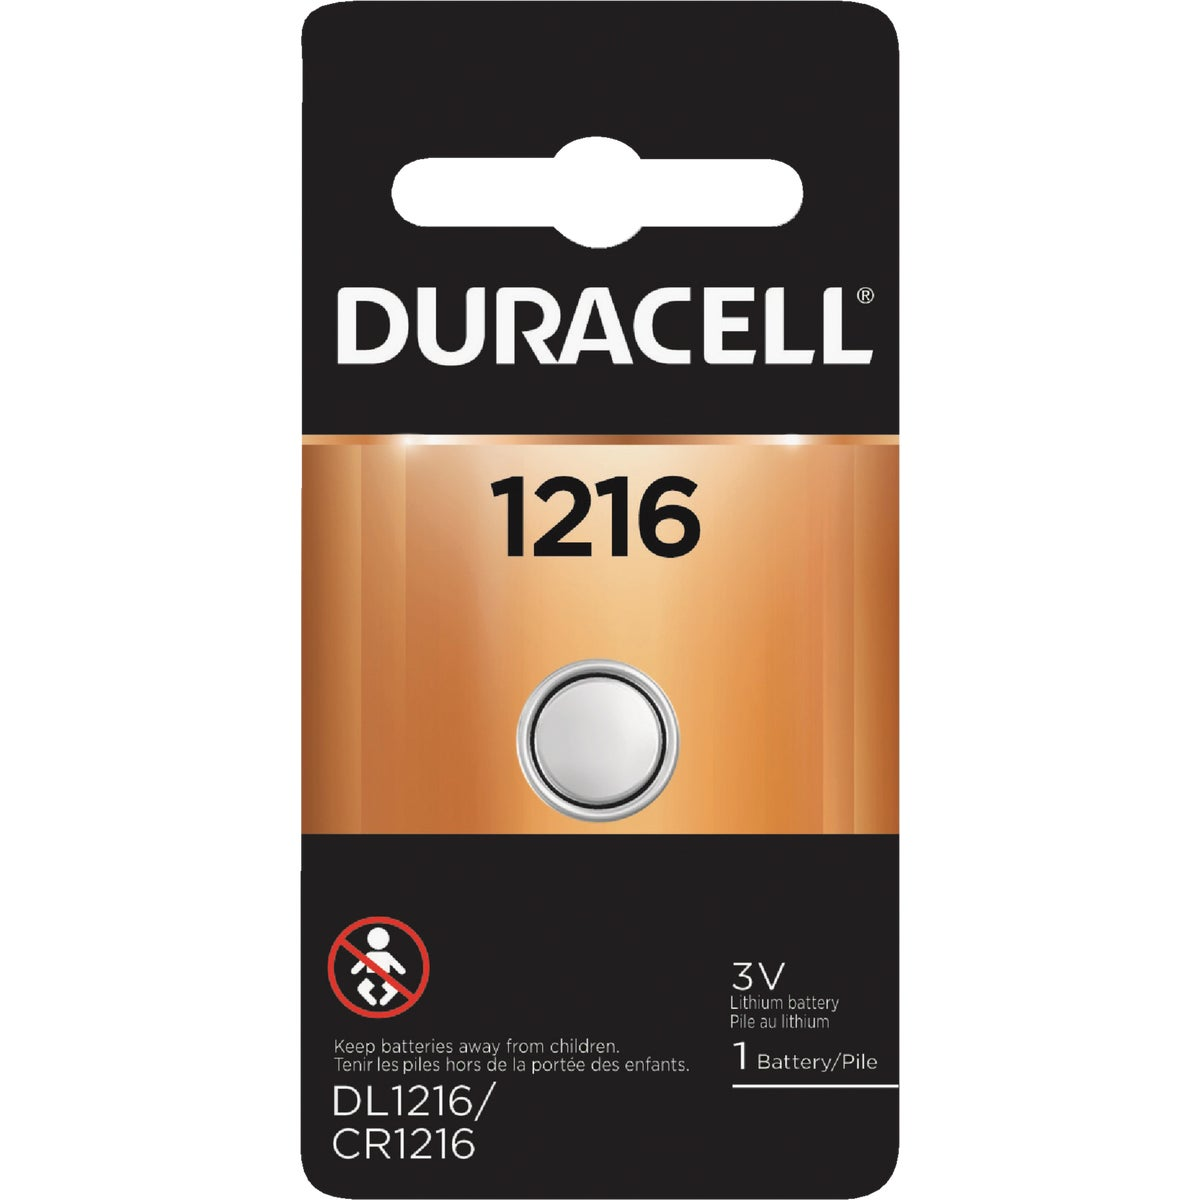 DL1216 3V WATCH BATTERY - 43287 by P & G  Duracell